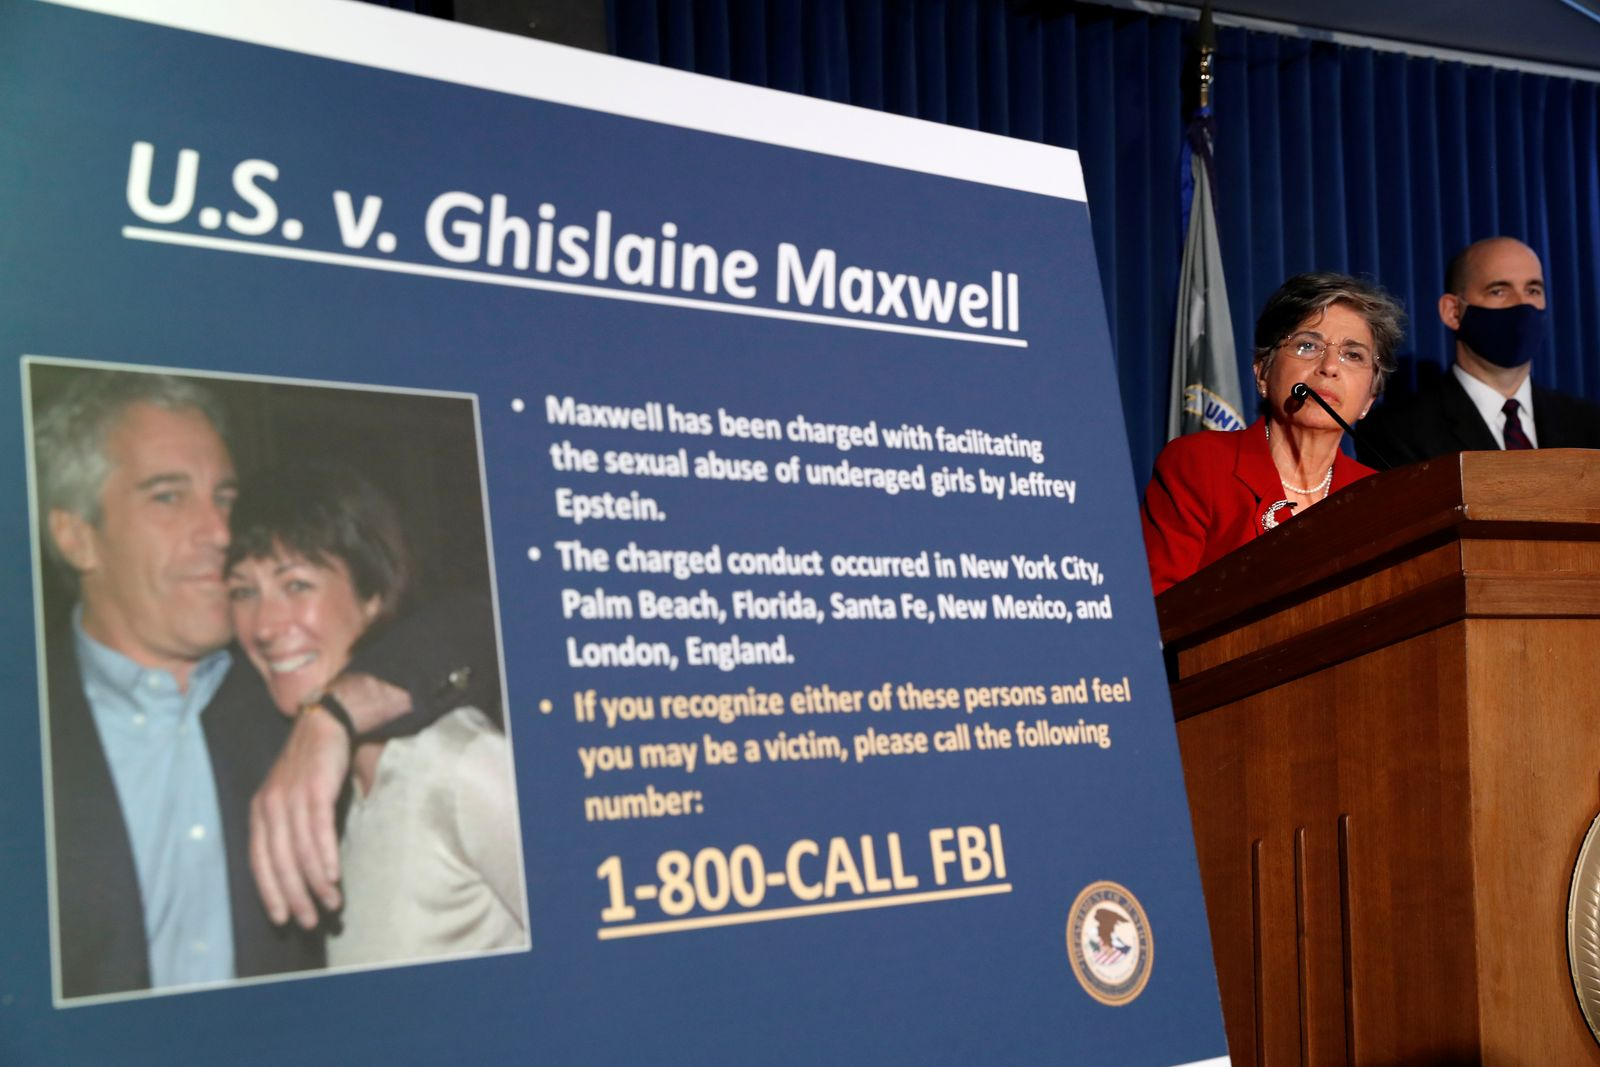 FILE PHOTO: Audrey Strauss, Acting United States Attorney for the Southern District of New York announces charges against Ghislaine Maxwel in New York